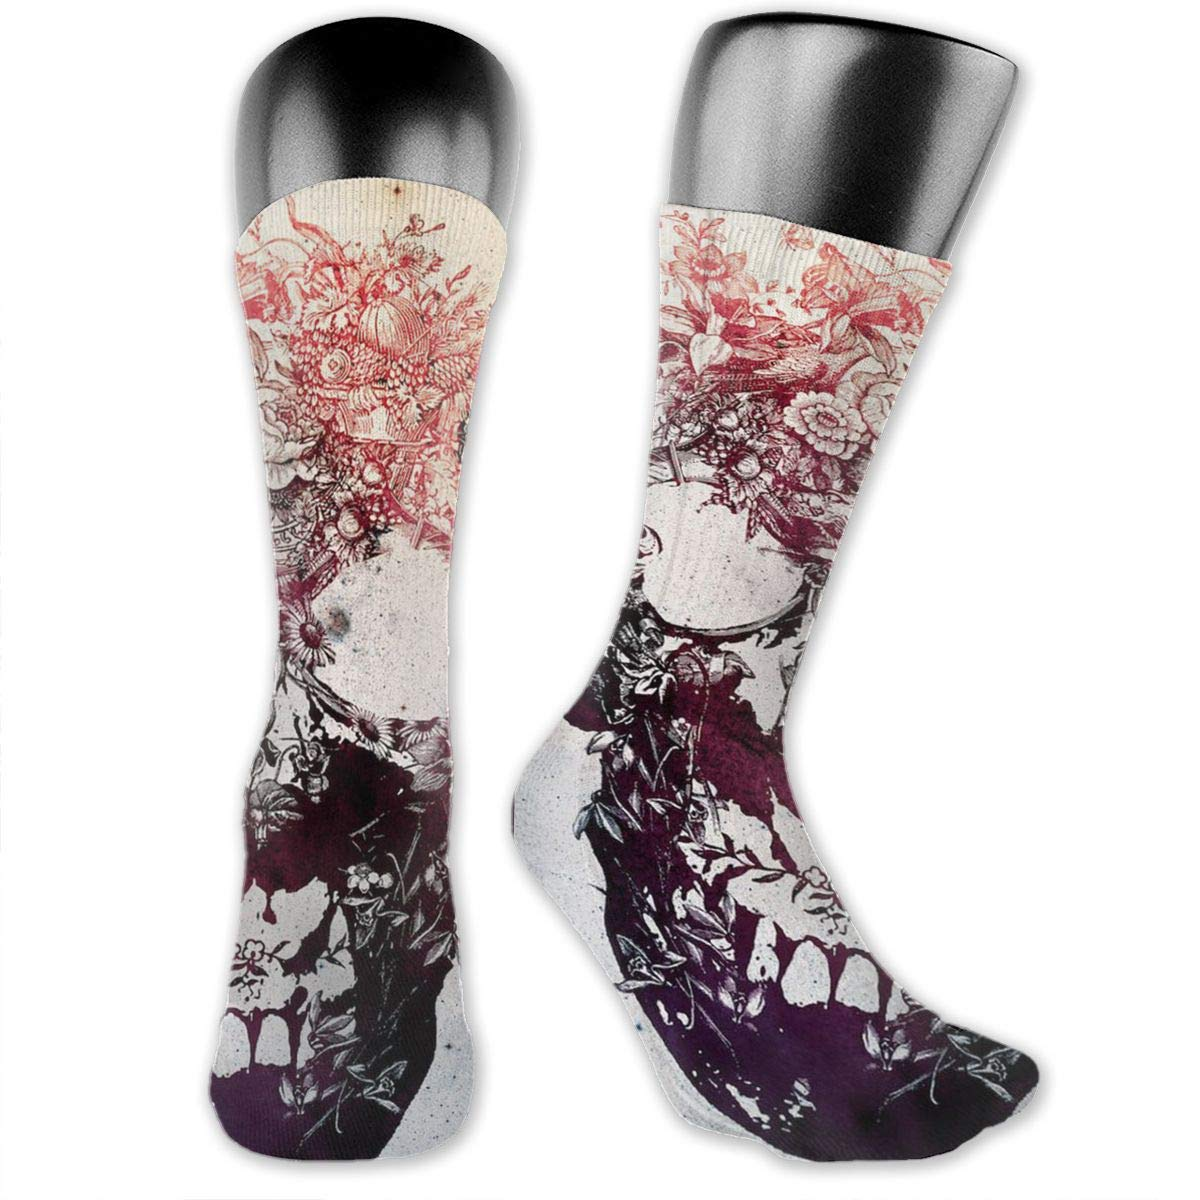 OLGCZM Collage Flower Skull Illustrations Men Womens Thin High Ankle Casual Socks Fit Outdoor Hiking Trail